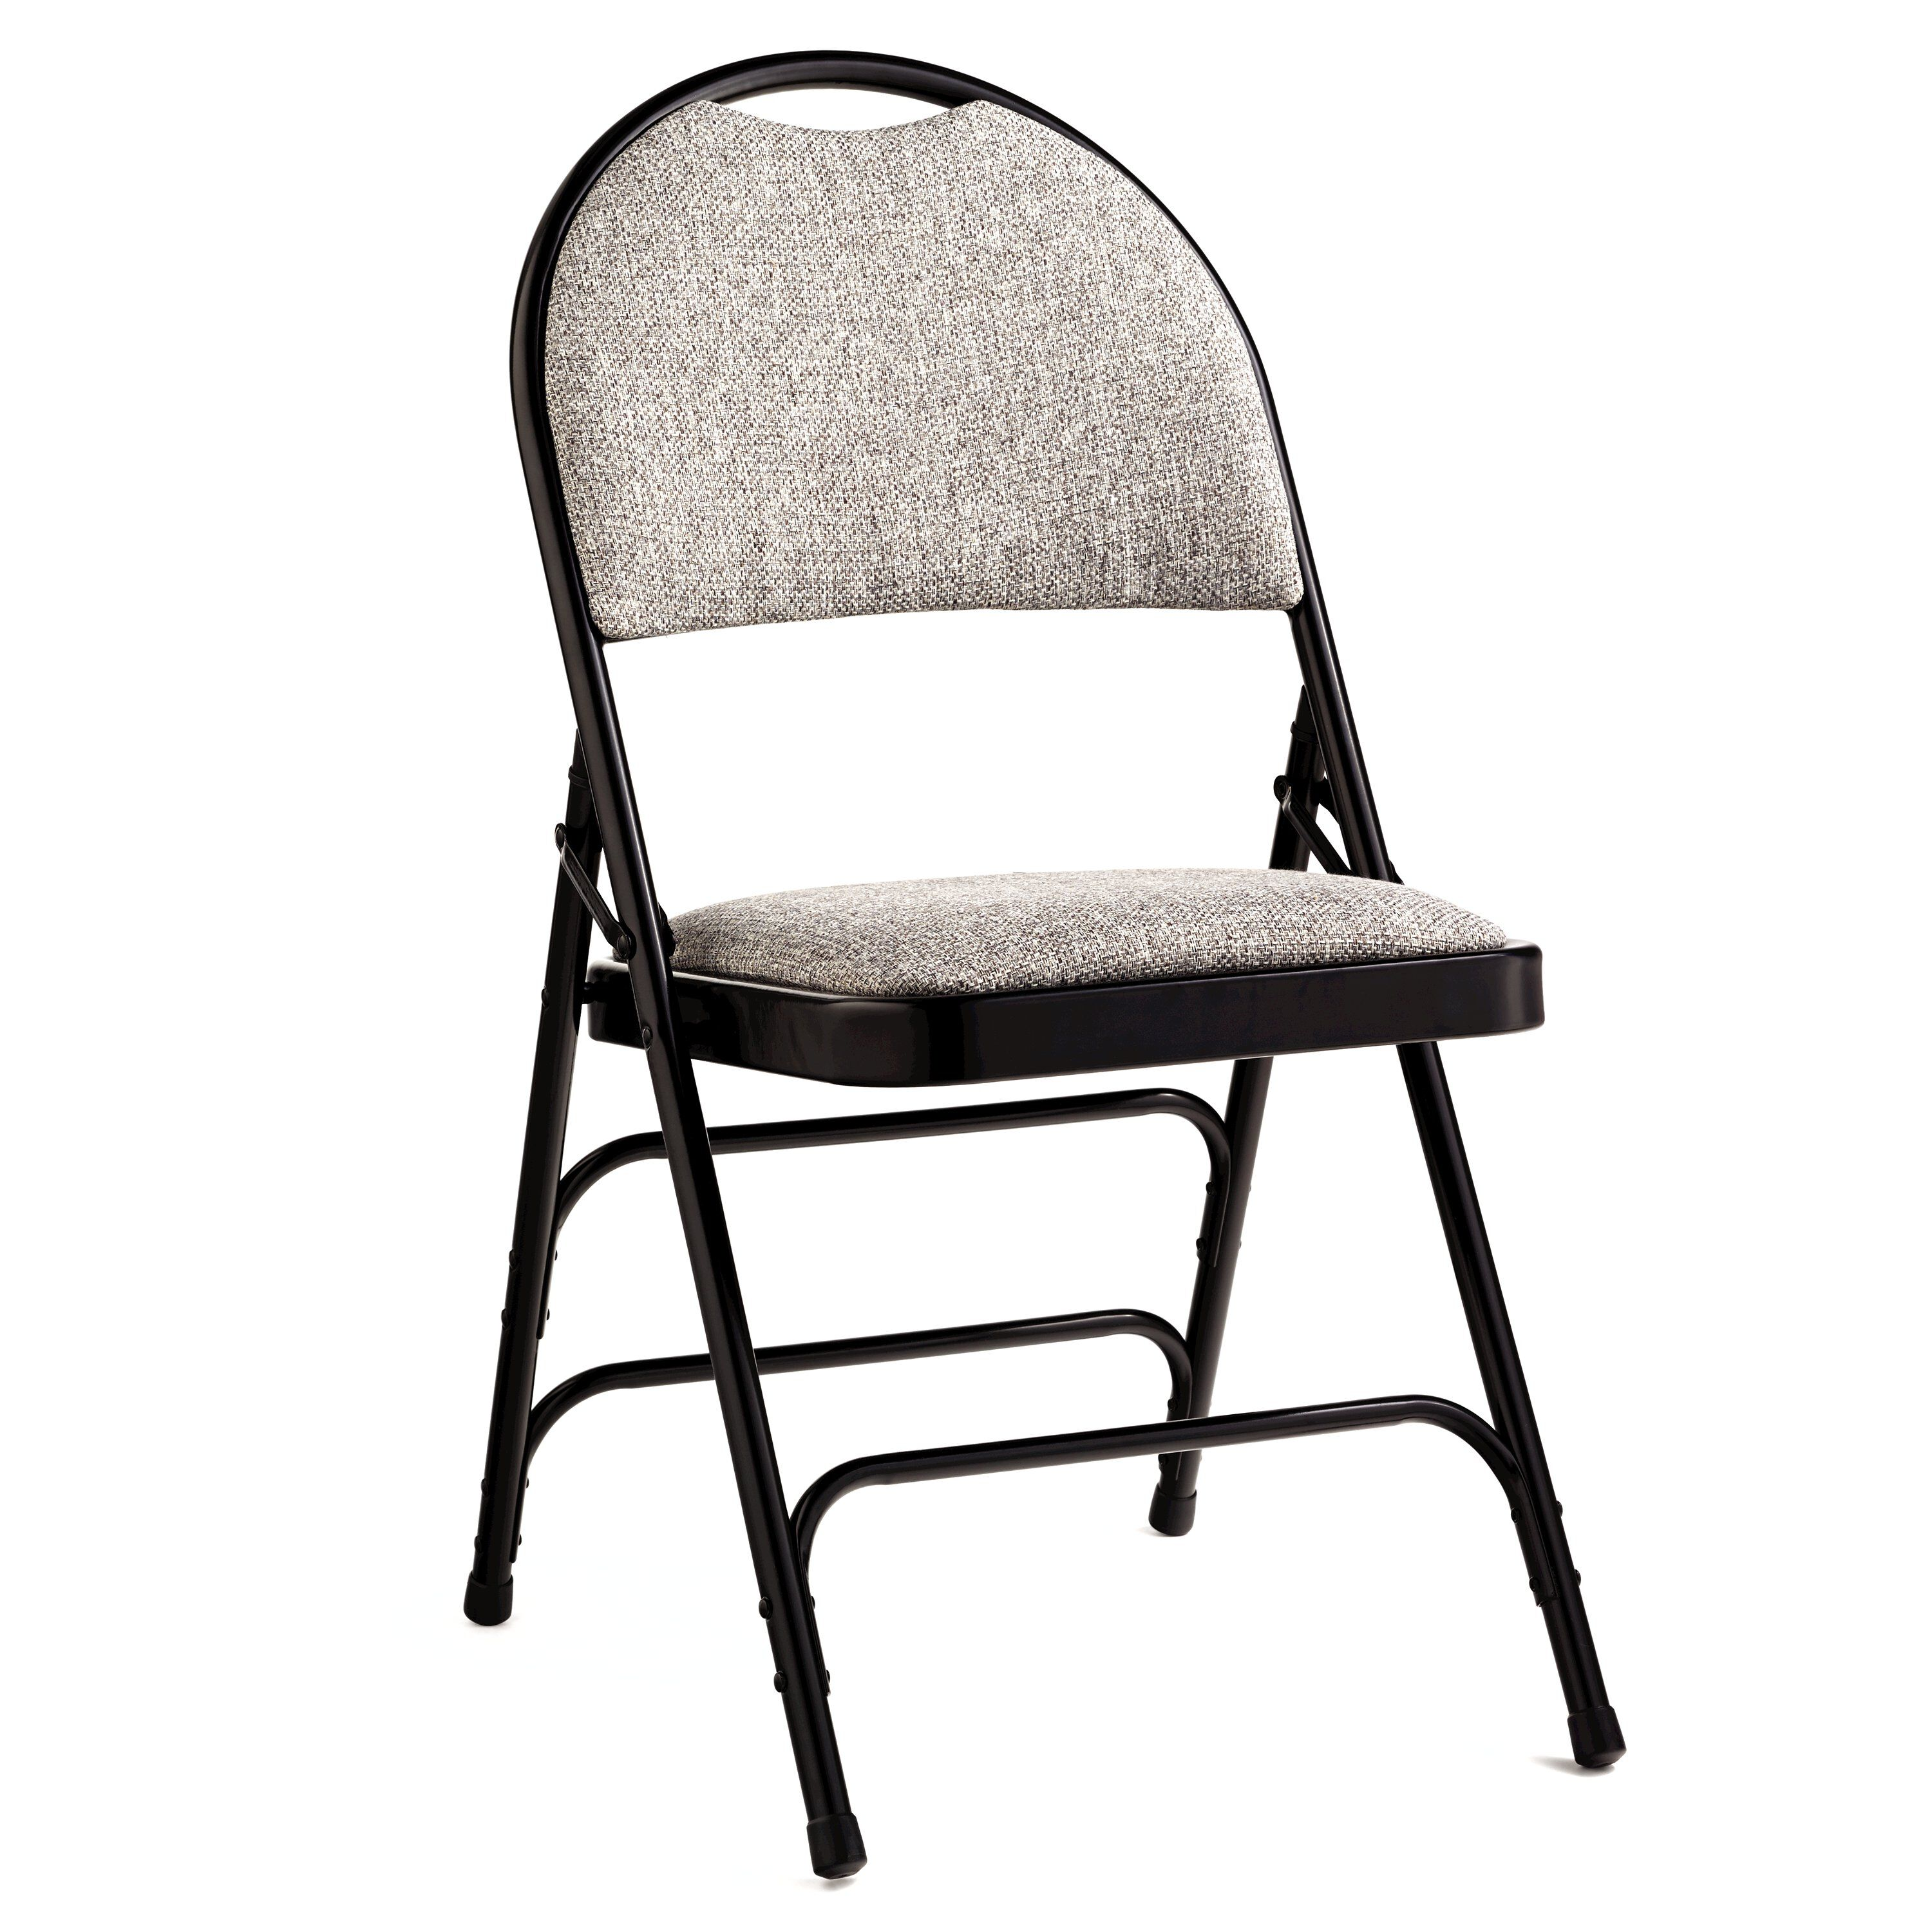 folding chair fabric comfortable chairs for bedrooms samsonite comfort series steel and case 4